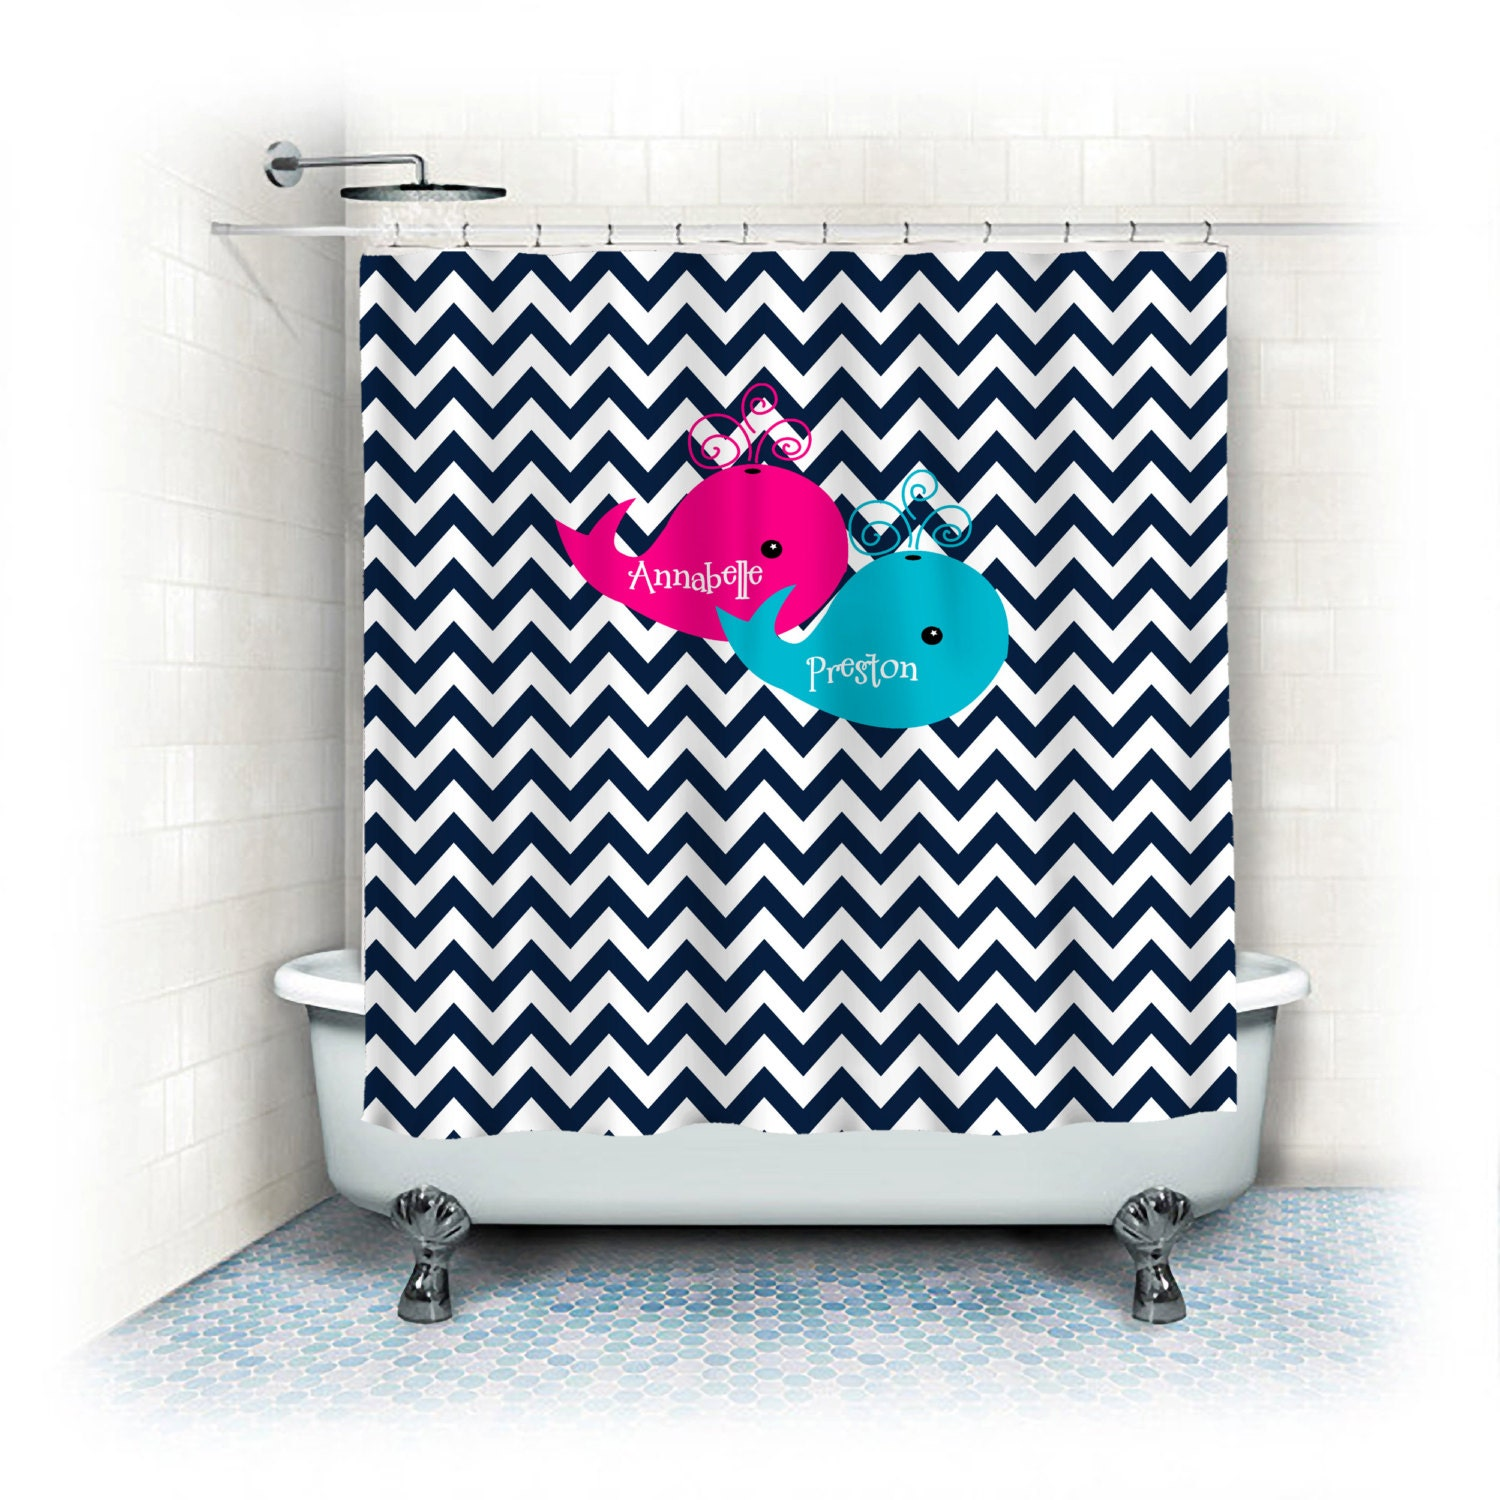 Personalized Shower Curtain Navy Blue Chevron With Hot Pink